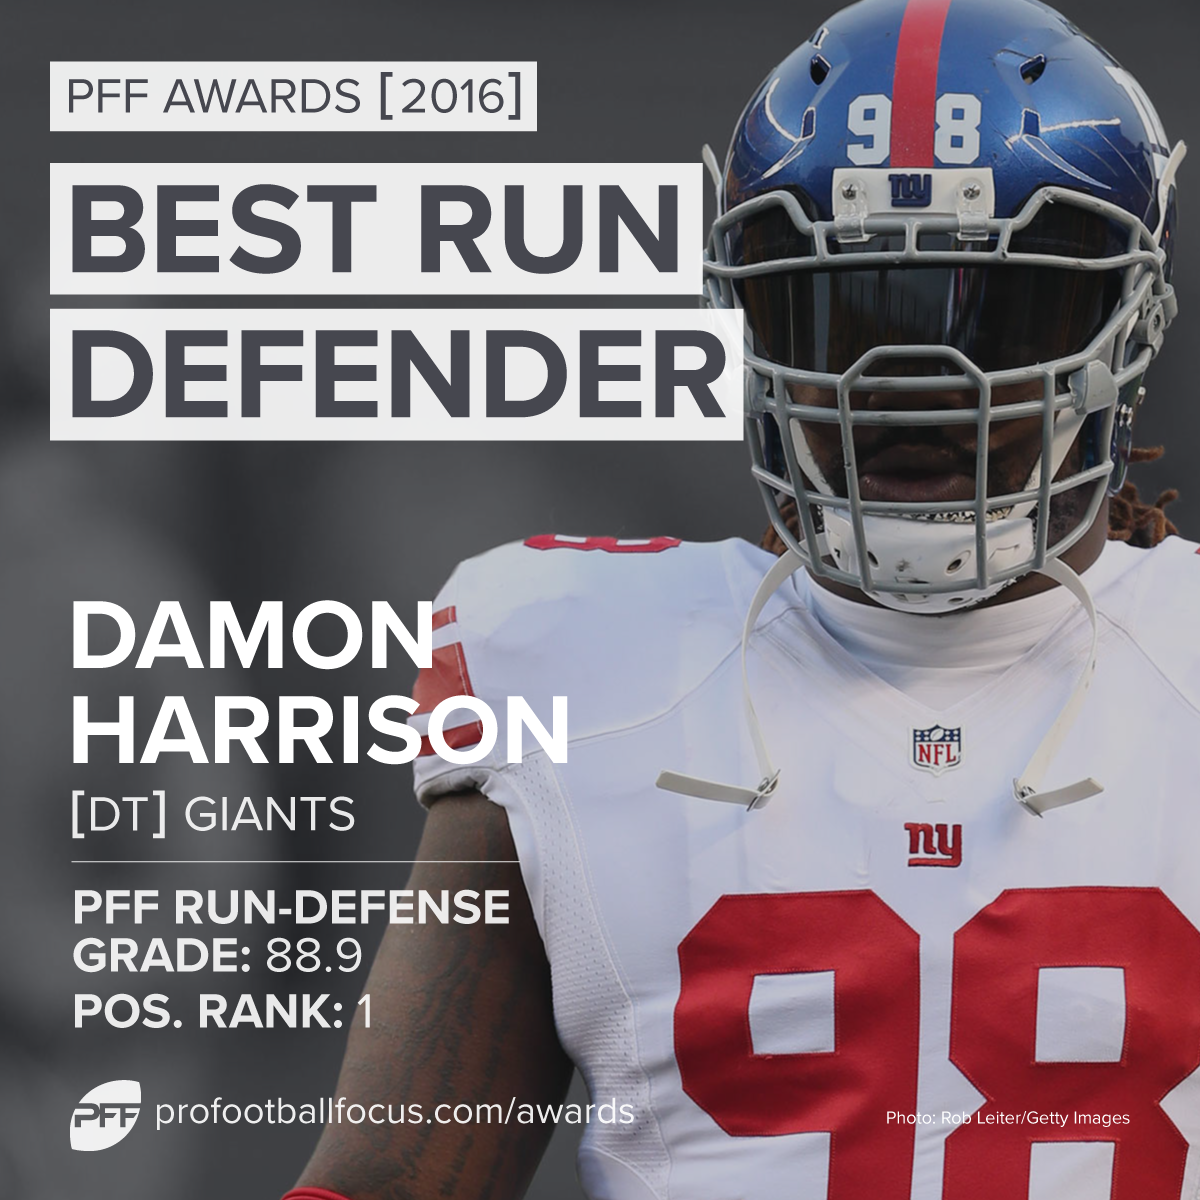 2016 PFF Best Run Defender: Damon Harrison